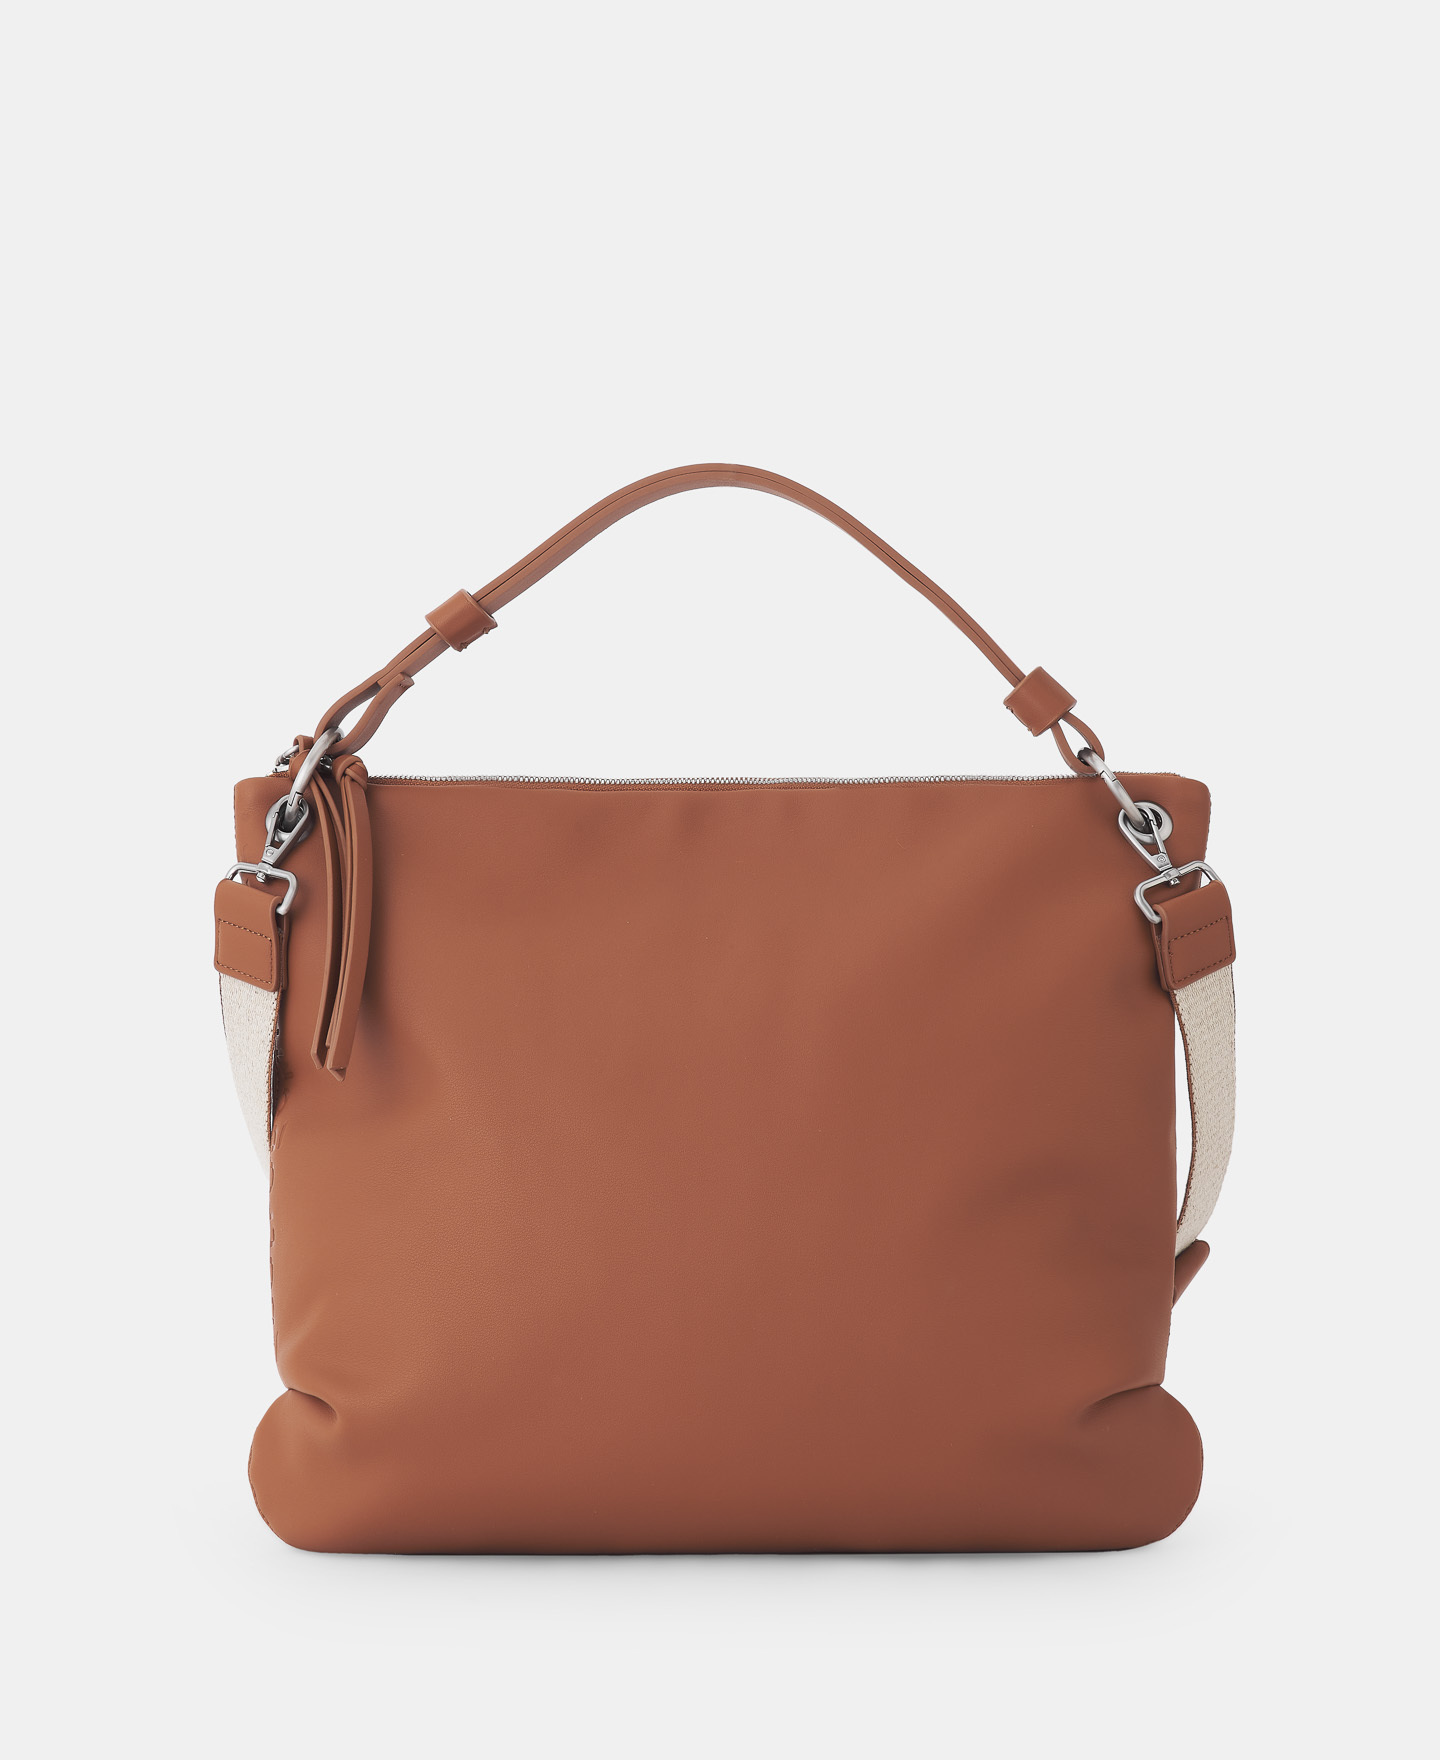 FAUX LEATHER HOBO[212251500211]